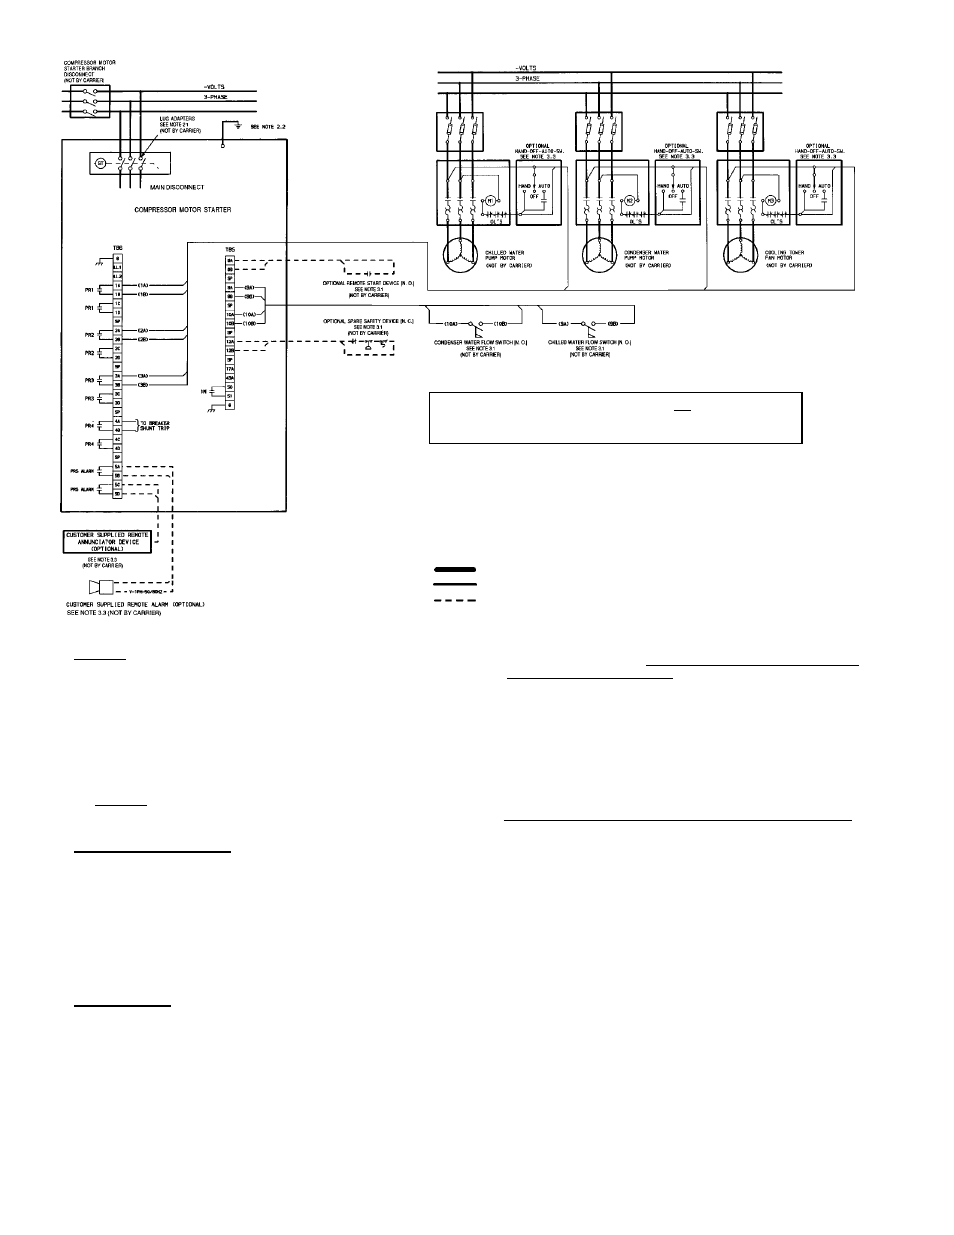 Carrier Hermetic Centrifugal Liquid Chillers 19xr User Manual Page Contactor Wiring Diagram 32 40